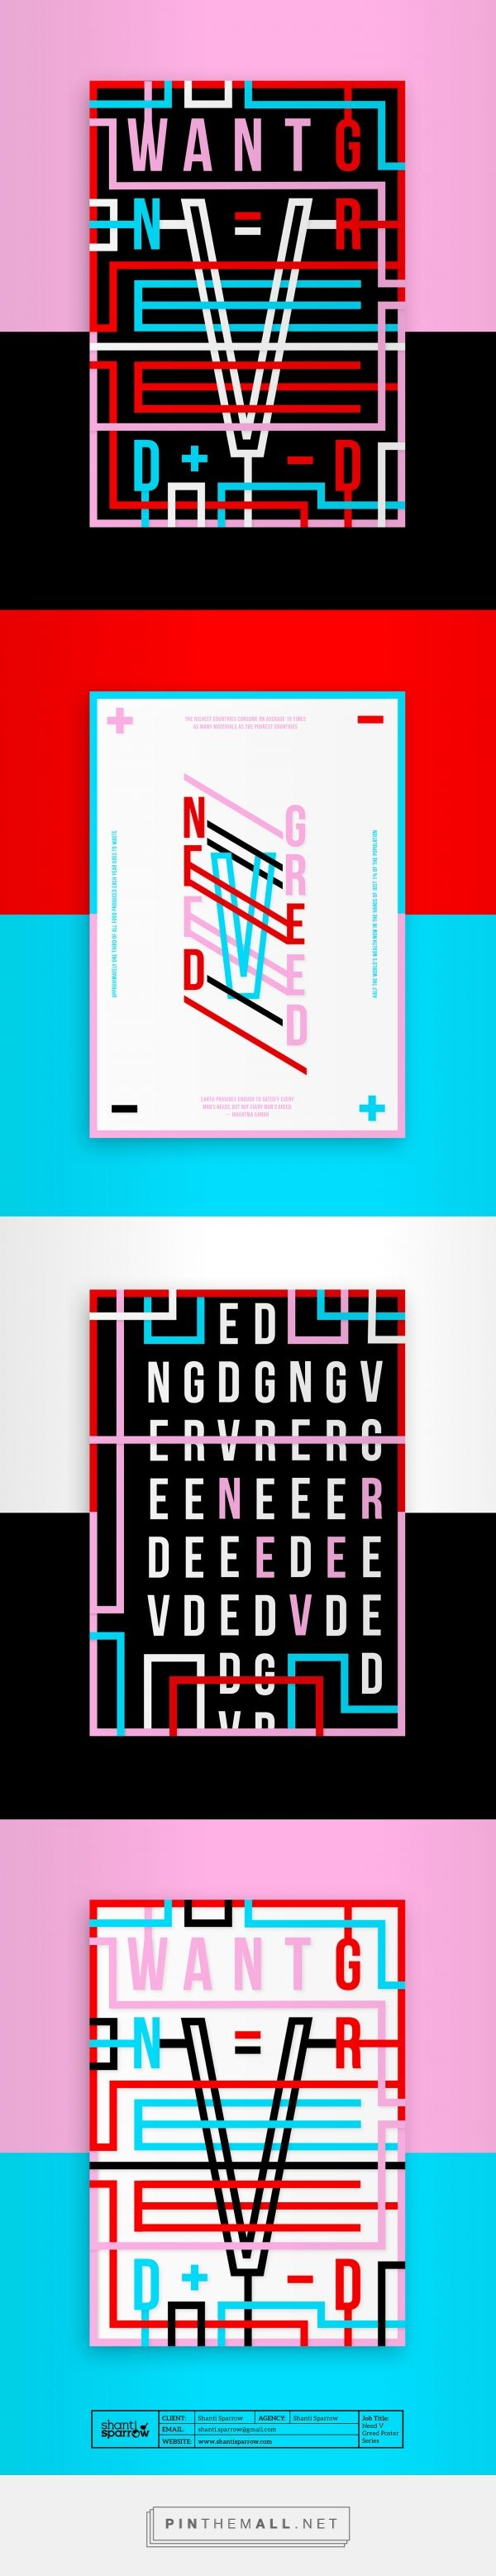 Need V Greed Poster Series by Shanti Sparrow Design | Fivestar Branding Agency – Design and Branding Agency & Curated Inspiration Gallery